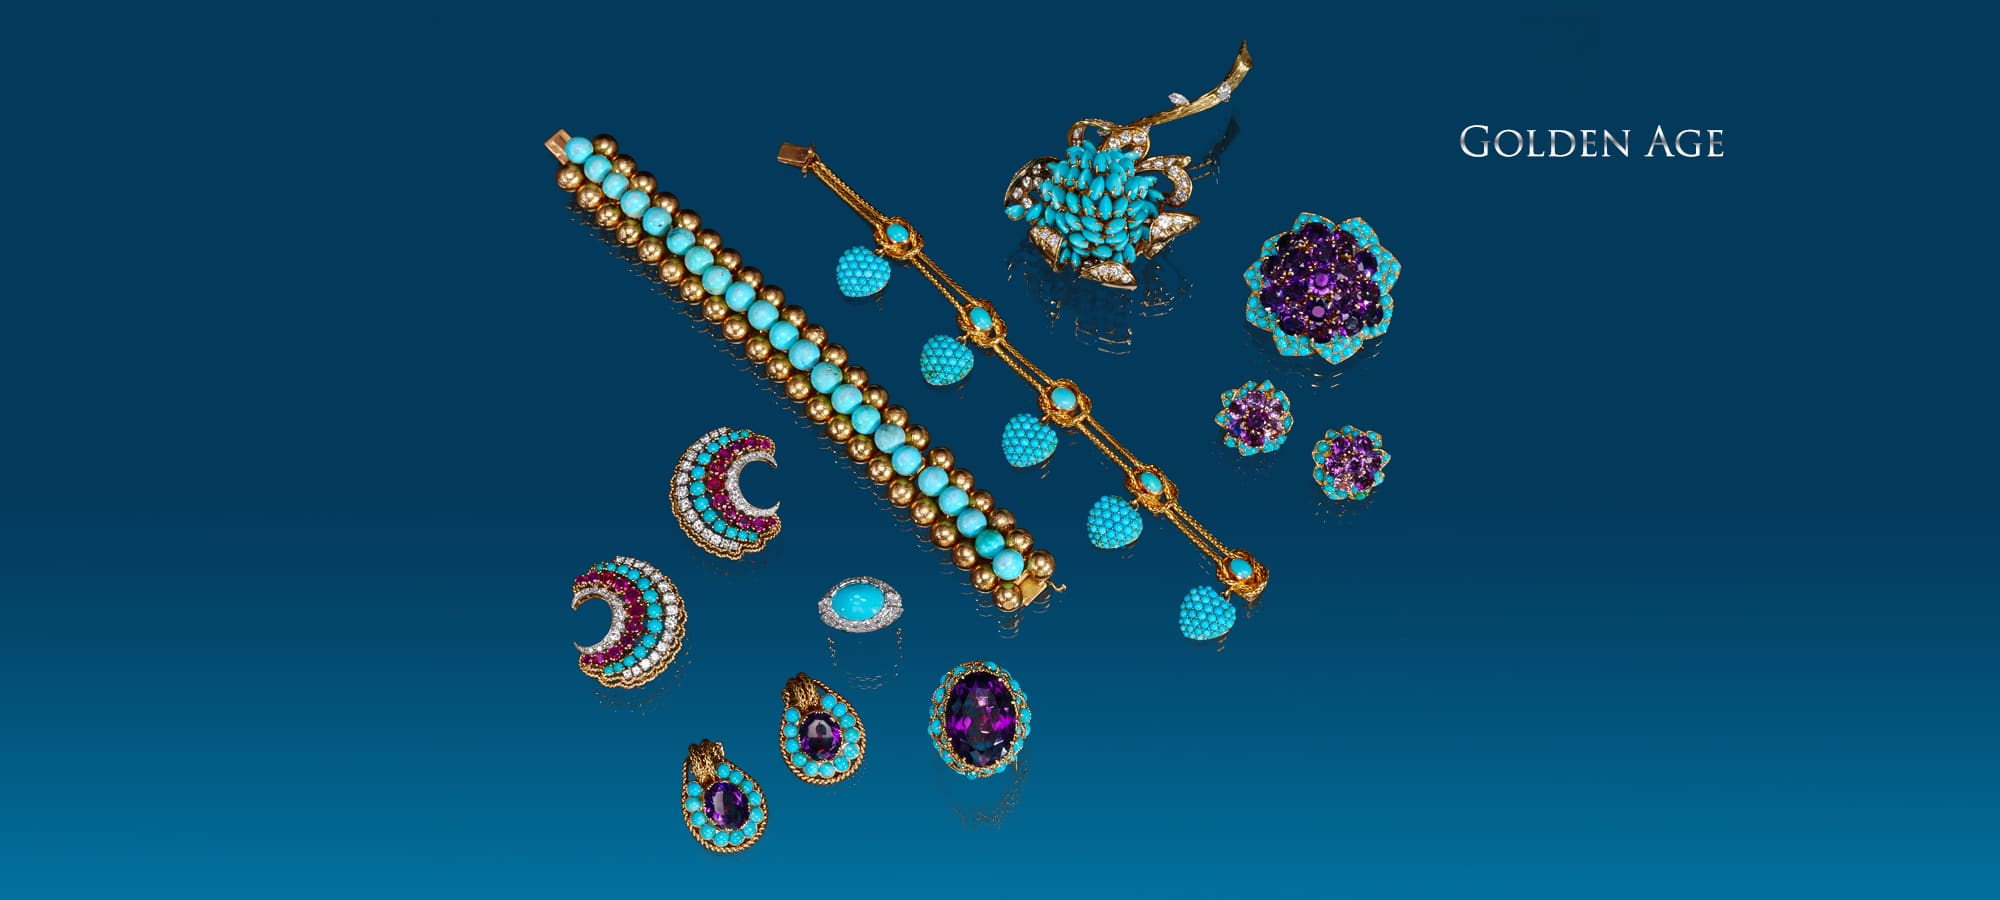 Turquoise and Gold Bracelet by Van Cleef & Arpels, Paris, Antique Gold and Turquoise Bracelet, Turquoise and Diamond Flower Brooch, French, Amethyst and Turquoise Brooch and Earrings Set by Cartier, Paris, Turquoise and Amethyst Ring and Earring Suite, Turquoise and Diamond Ring by Cartier, Paris, Ruby, Diamond and Turquoise Earrings